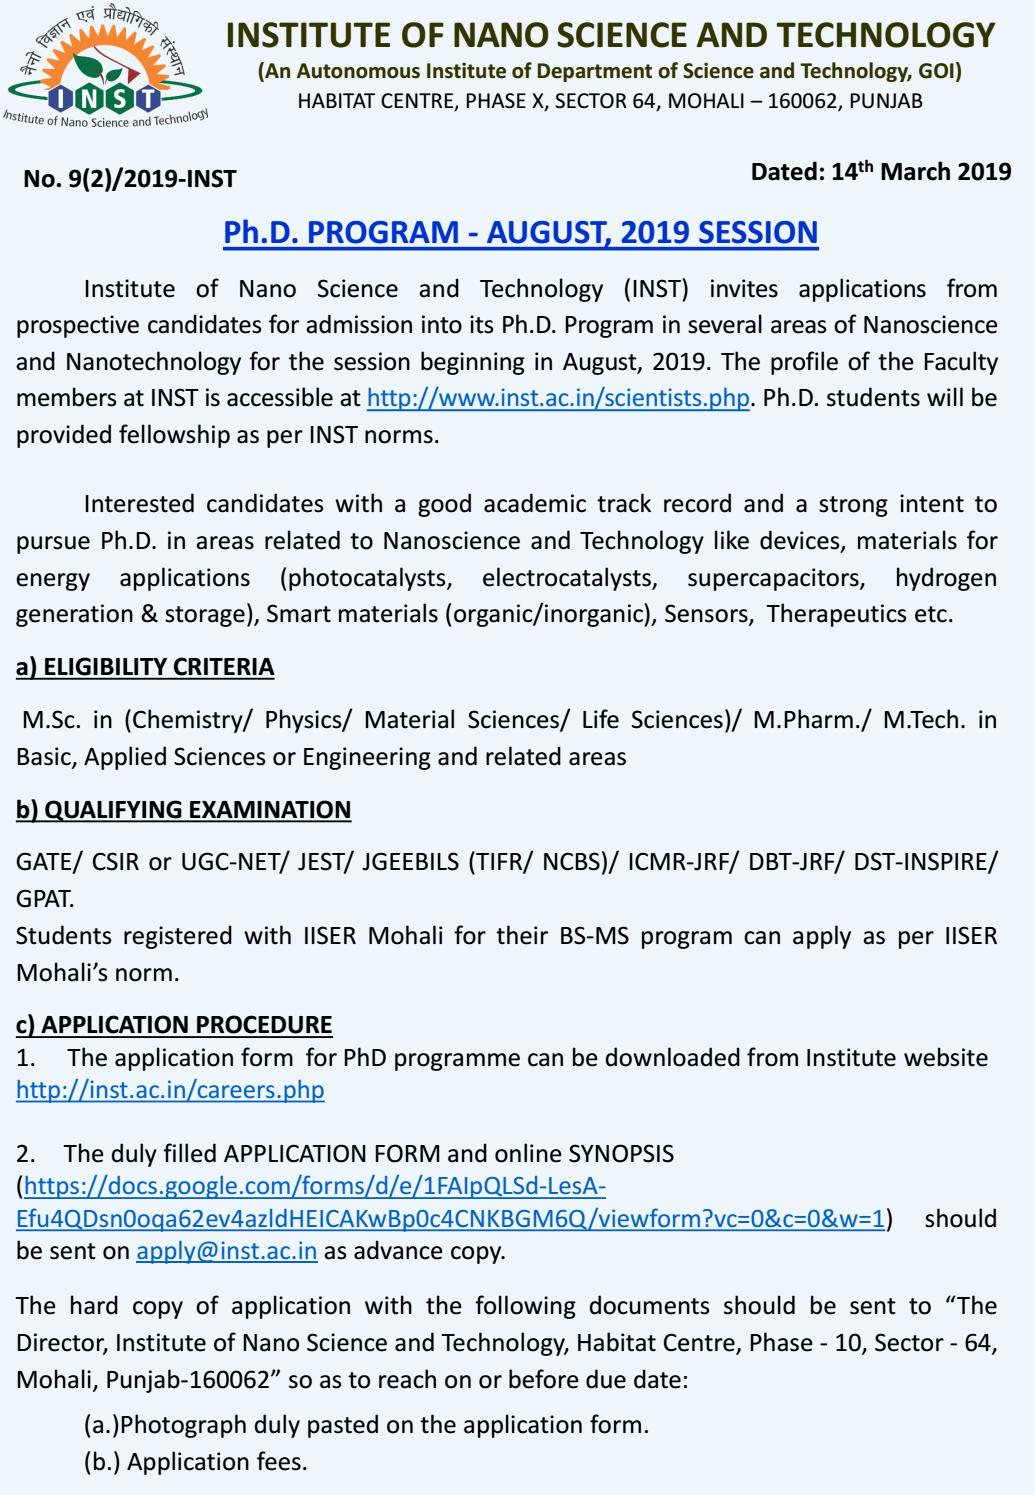 INST Phd Programme - August, 2019 Session: Application